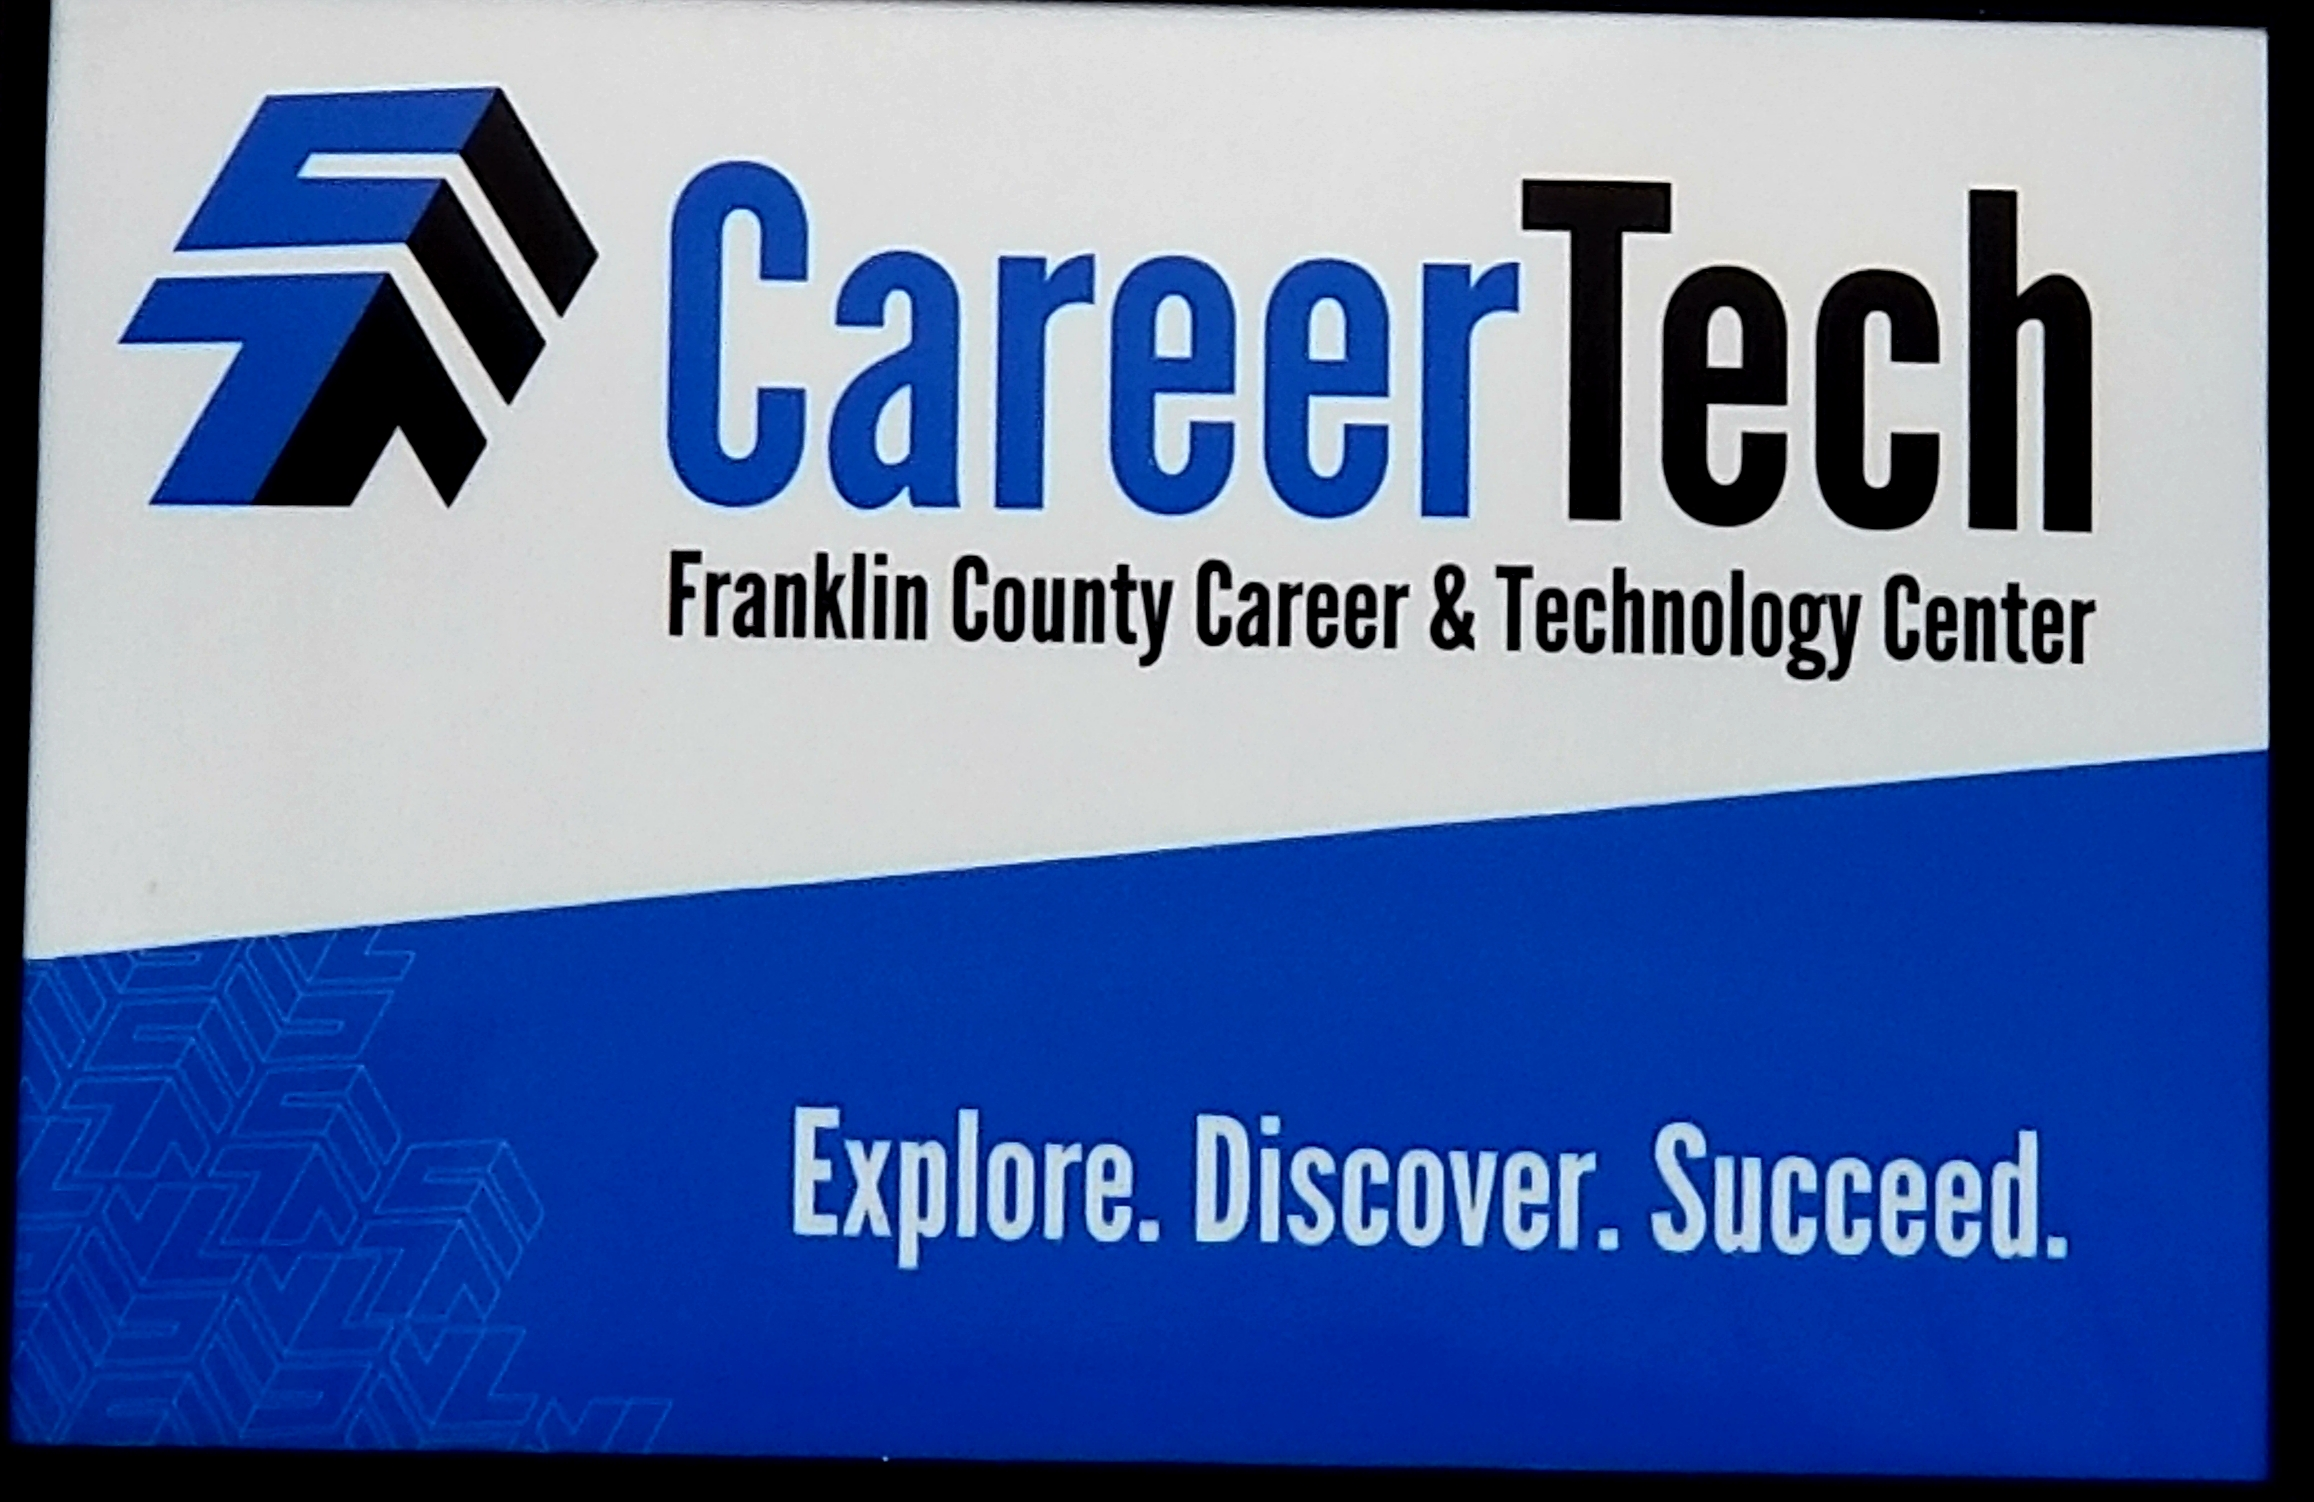 Setting Up Students for Career Success